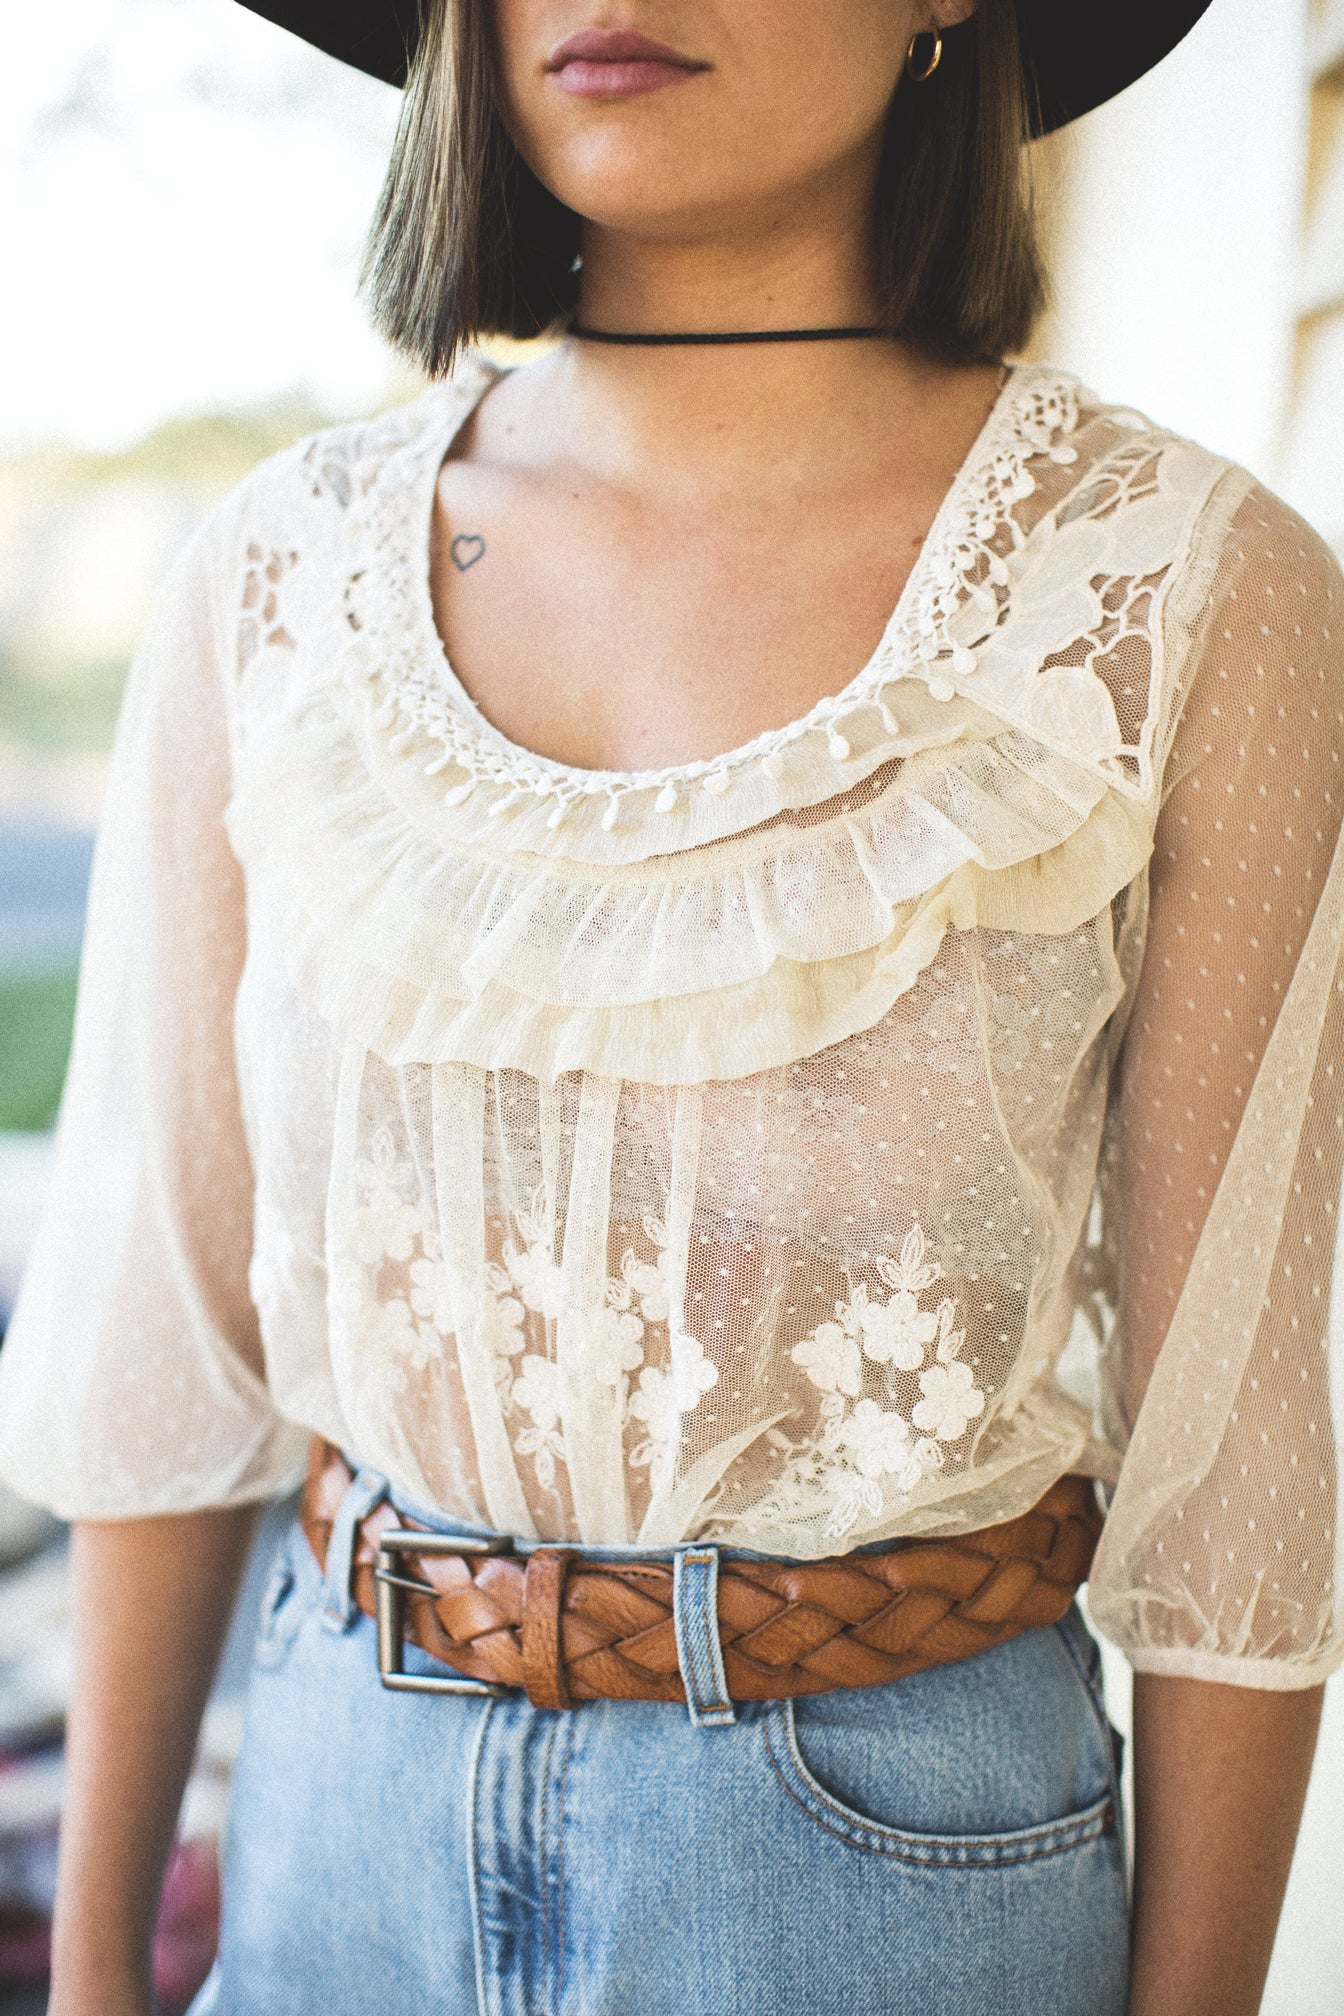 The Jody Vintage Lace Top